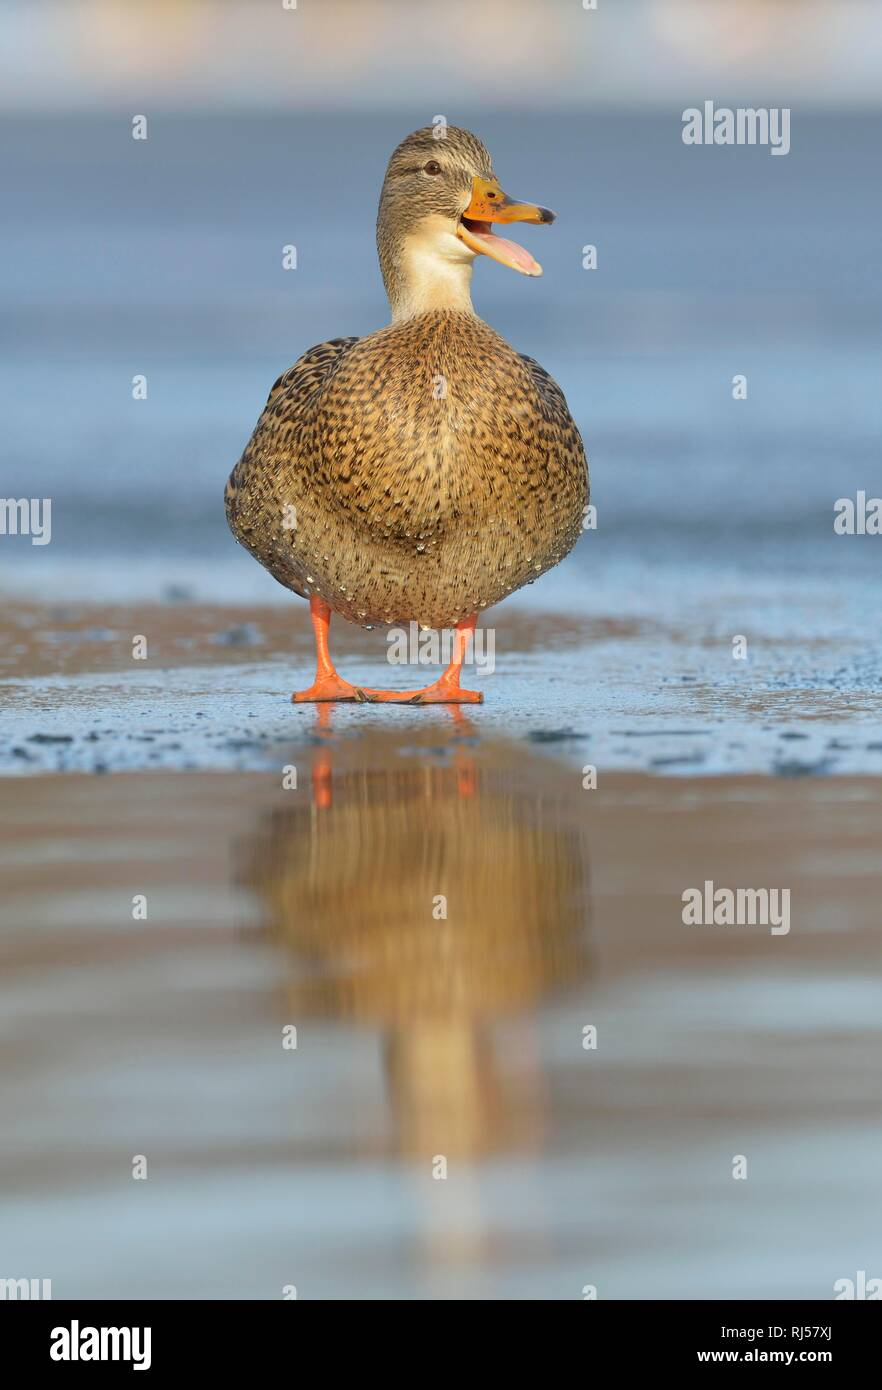 Chattering Stock Photos & Chattering Stock Images - Page 2